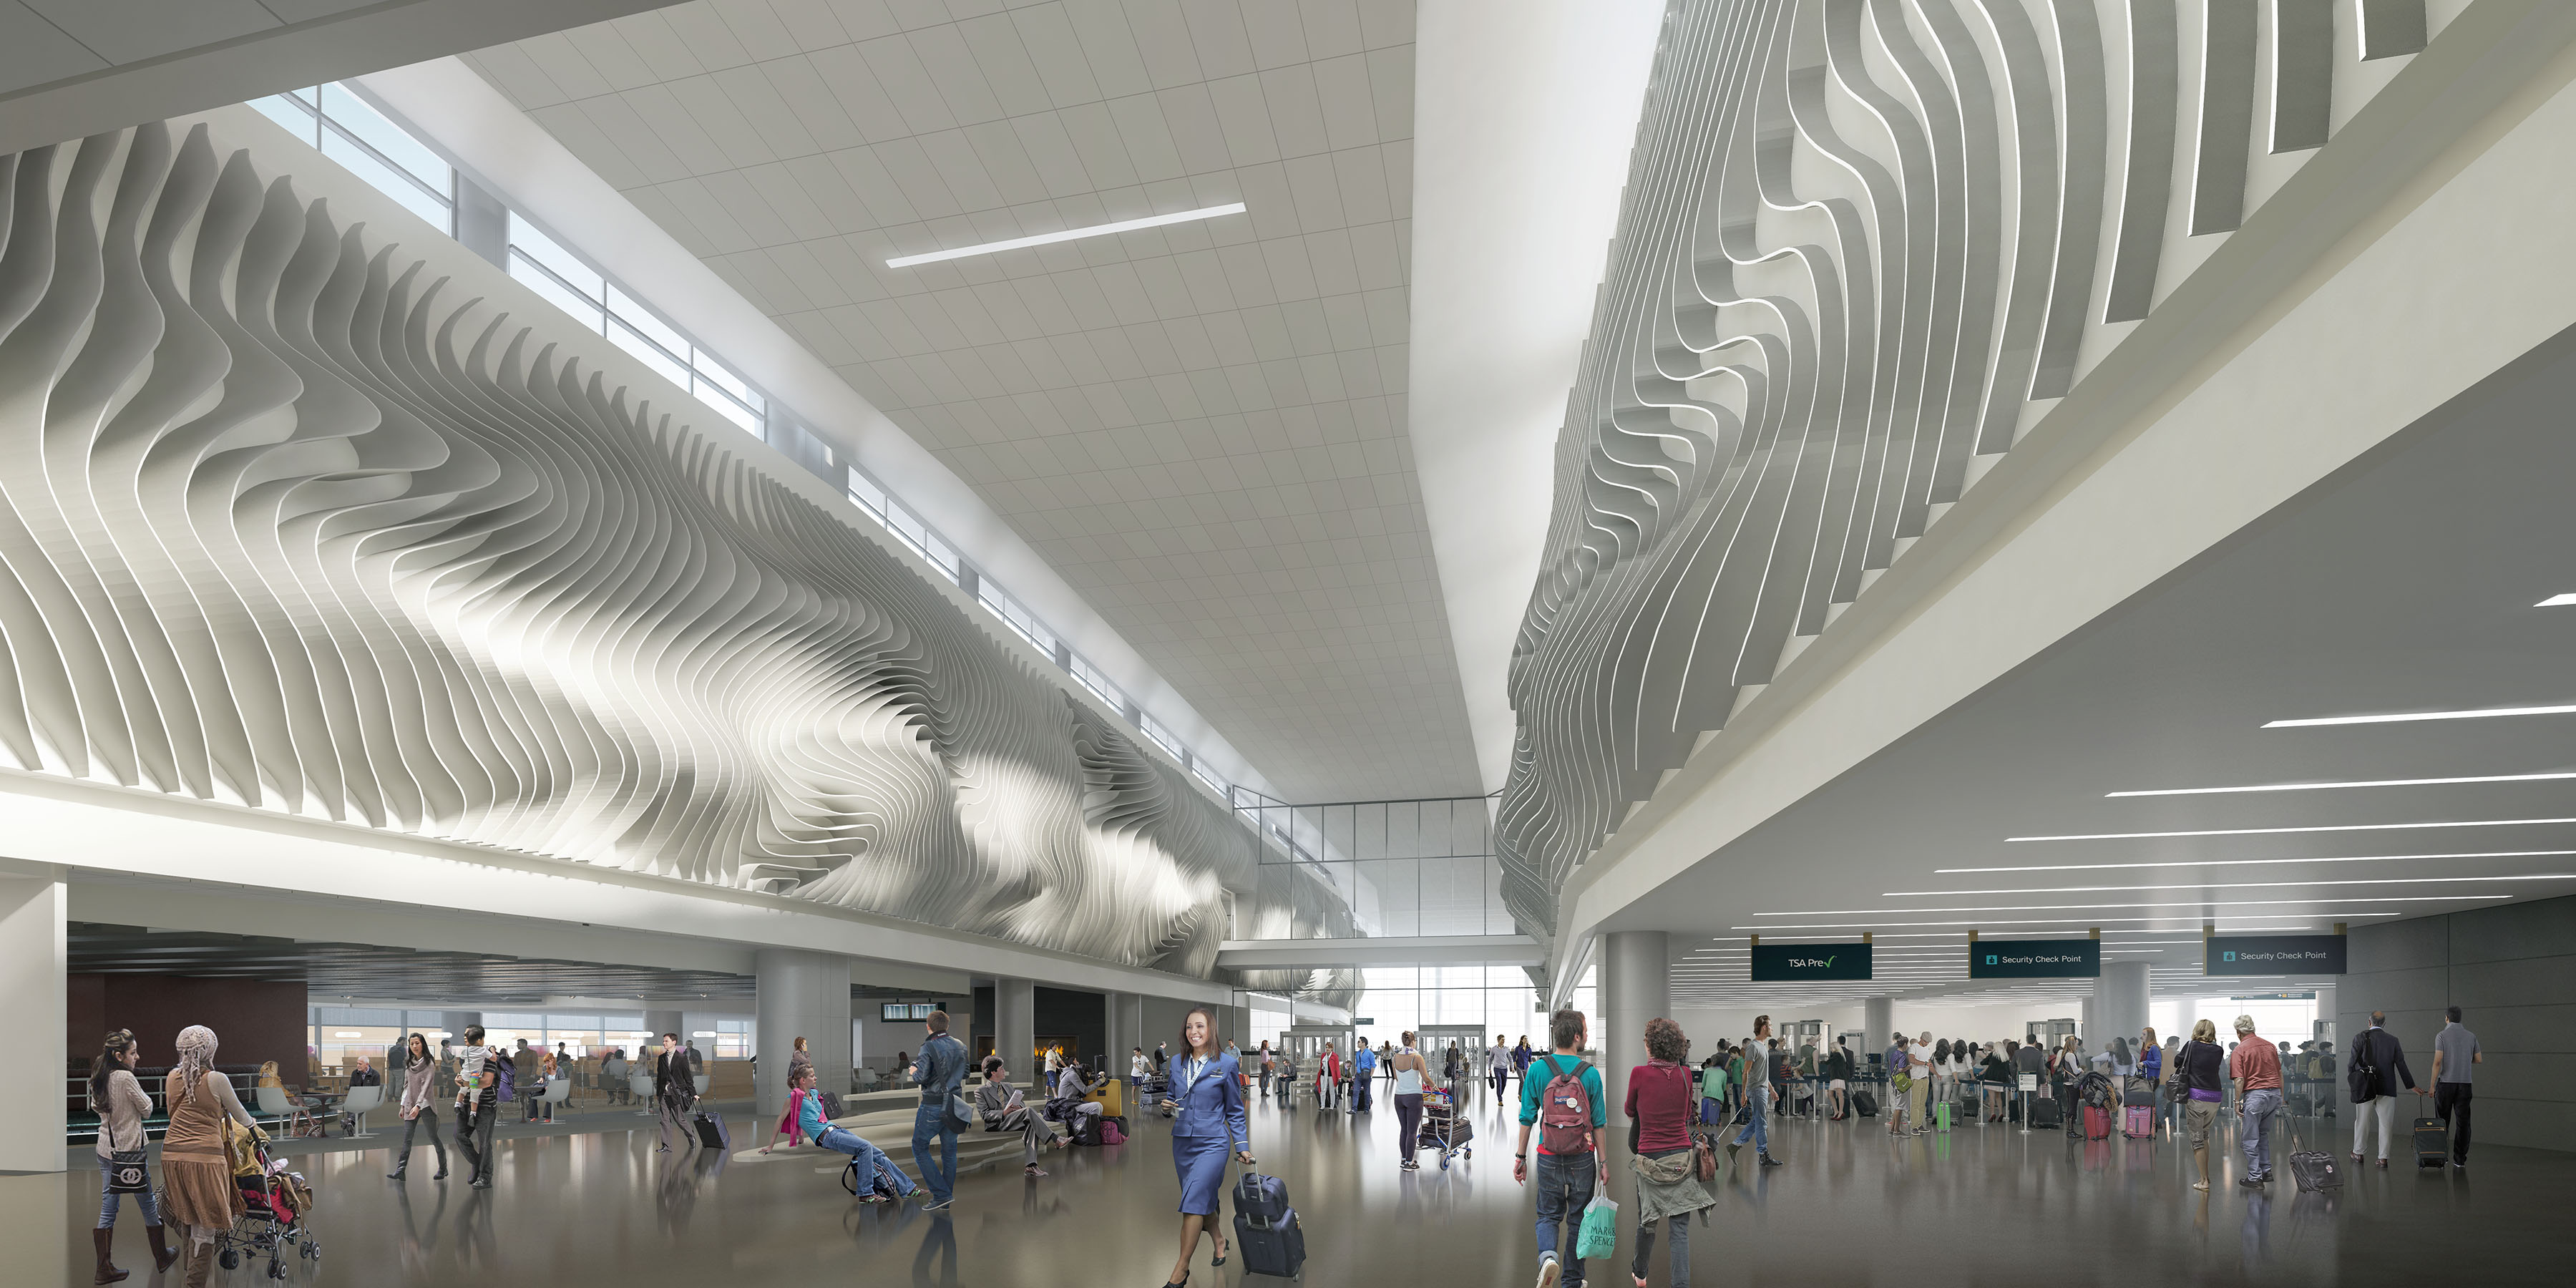 Home Interior Design Plans Renderings And Images 187 Salt Lake International Airport